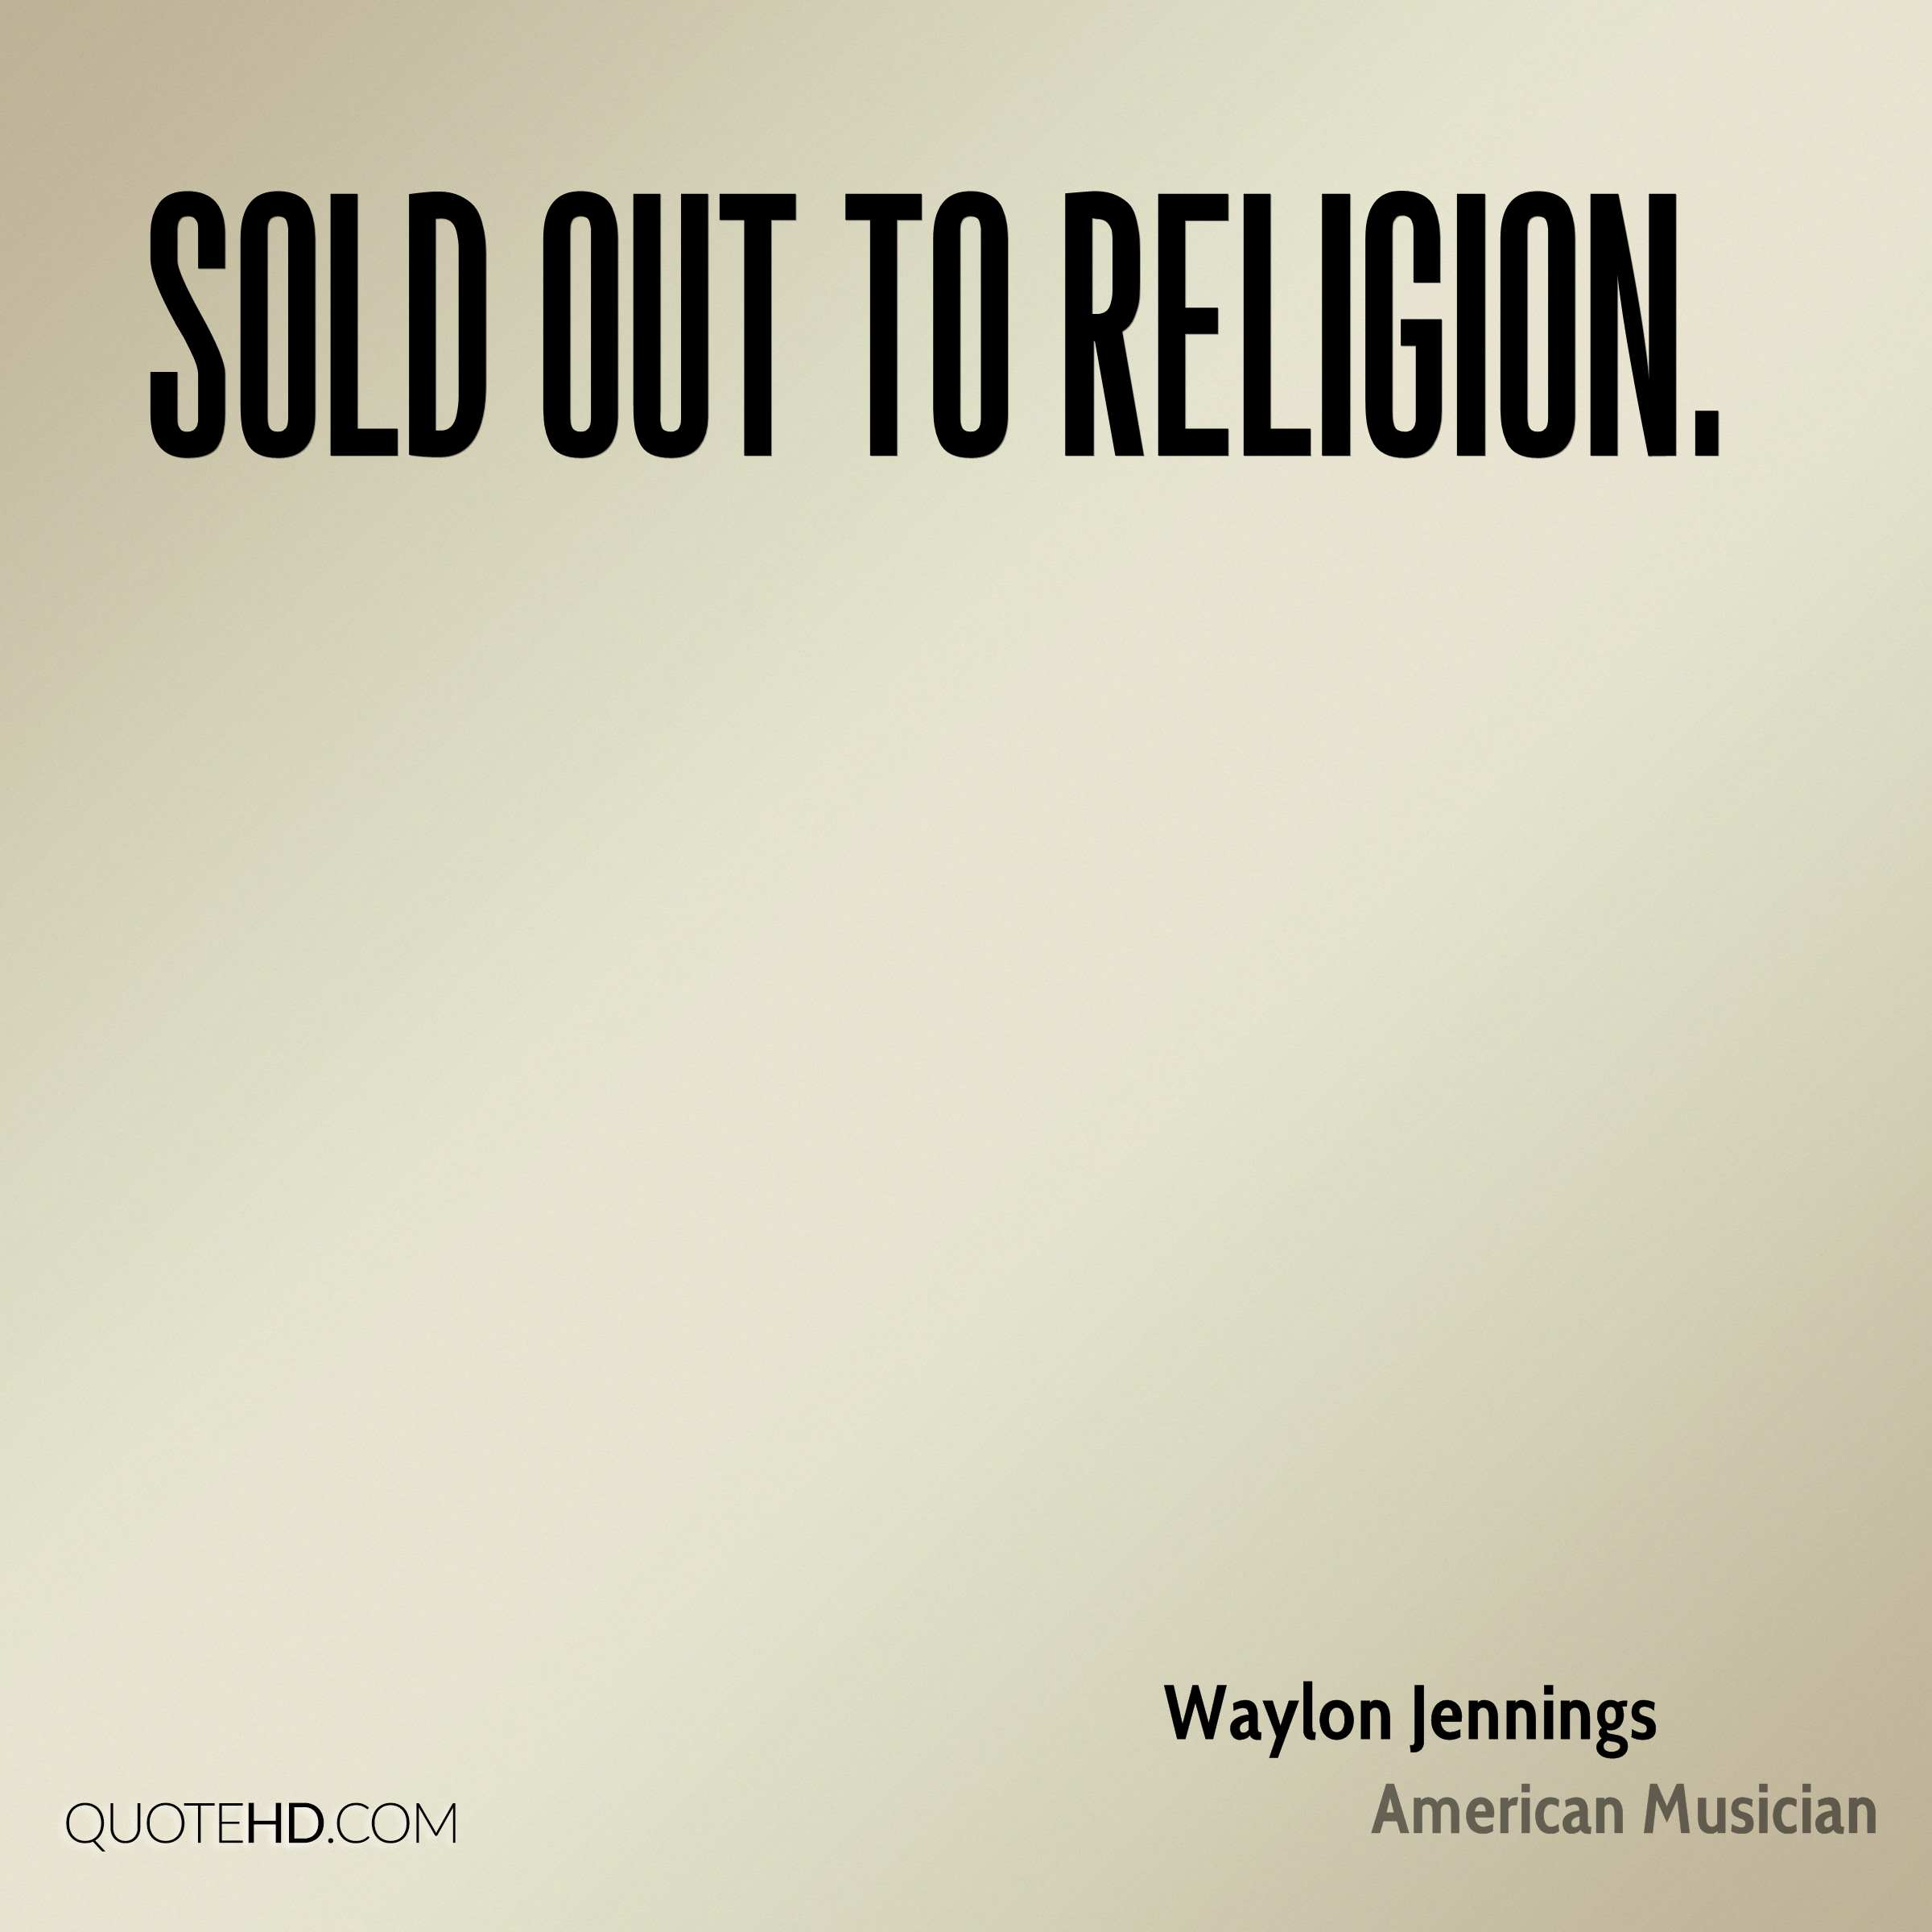 sold out to religion.